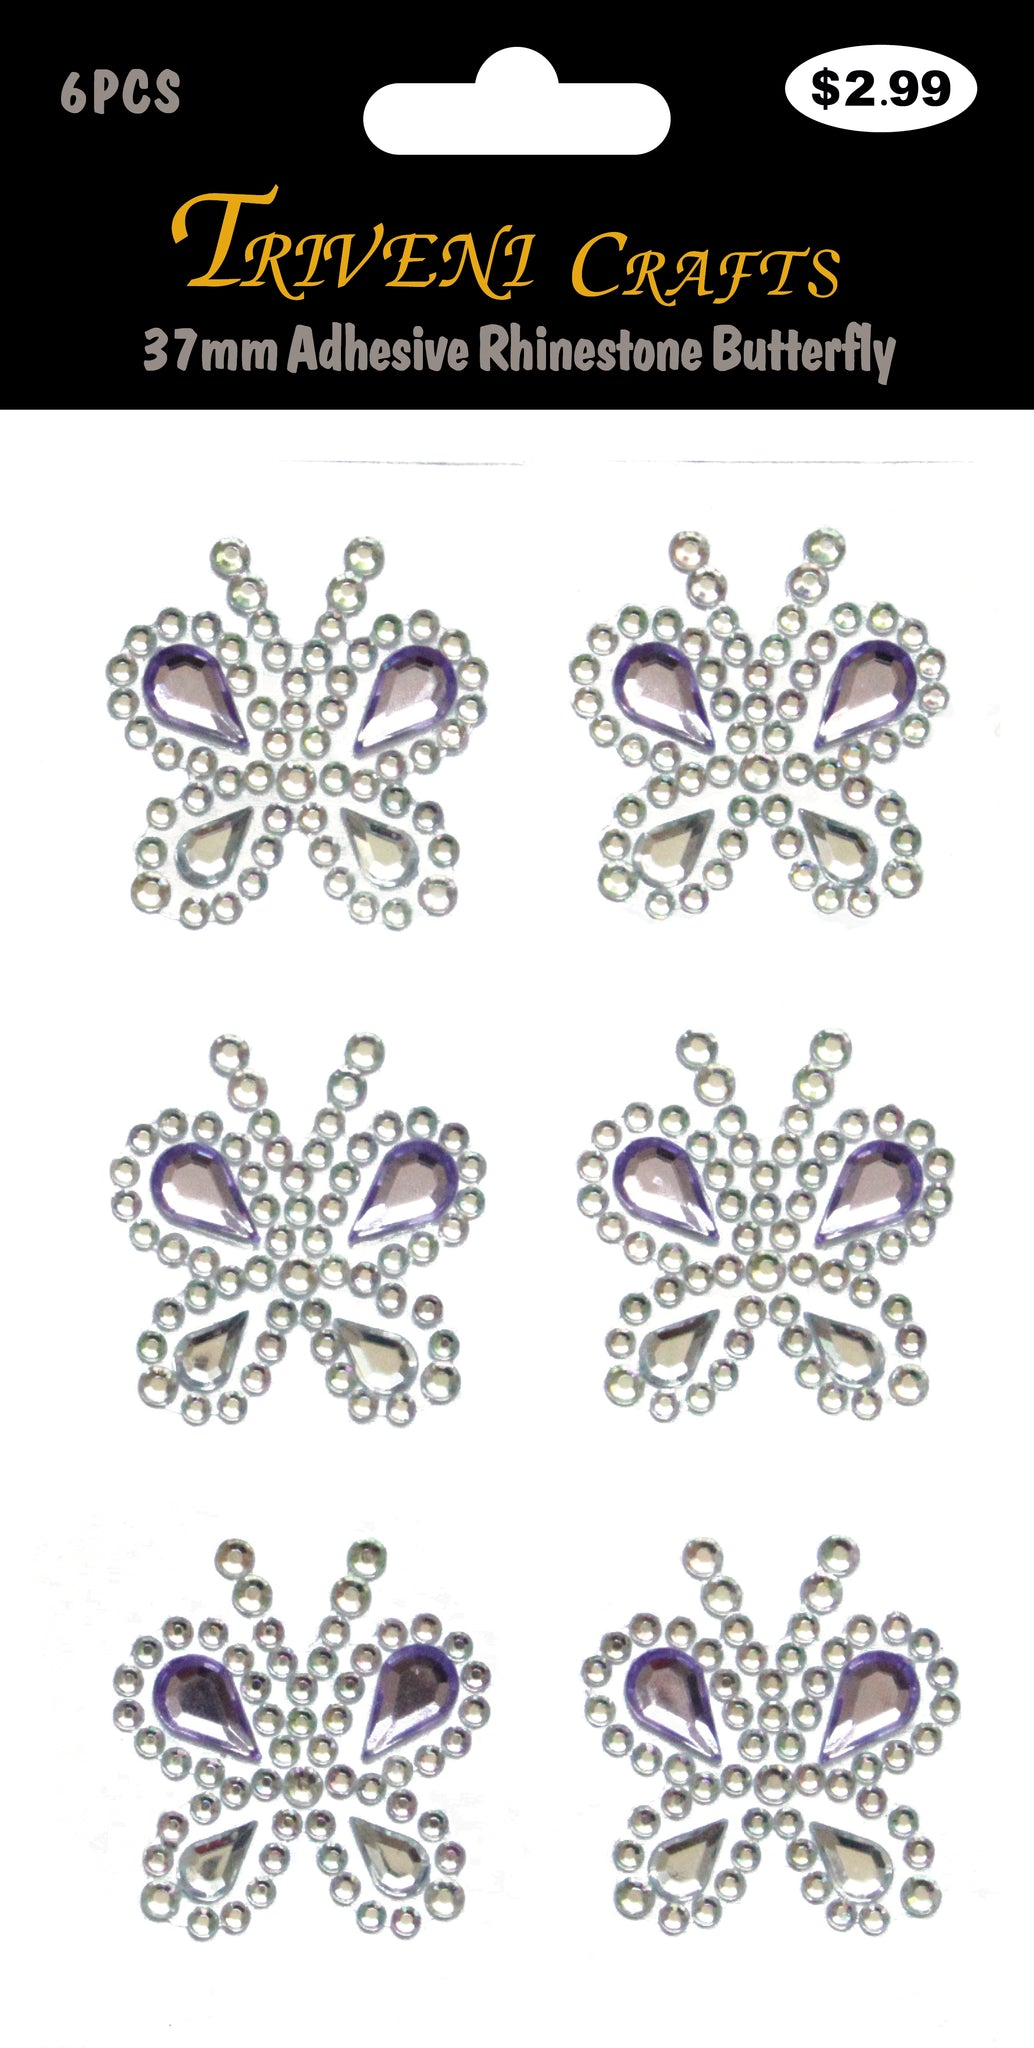 37mm Adhesive Rhinestone Butterfly - Purple